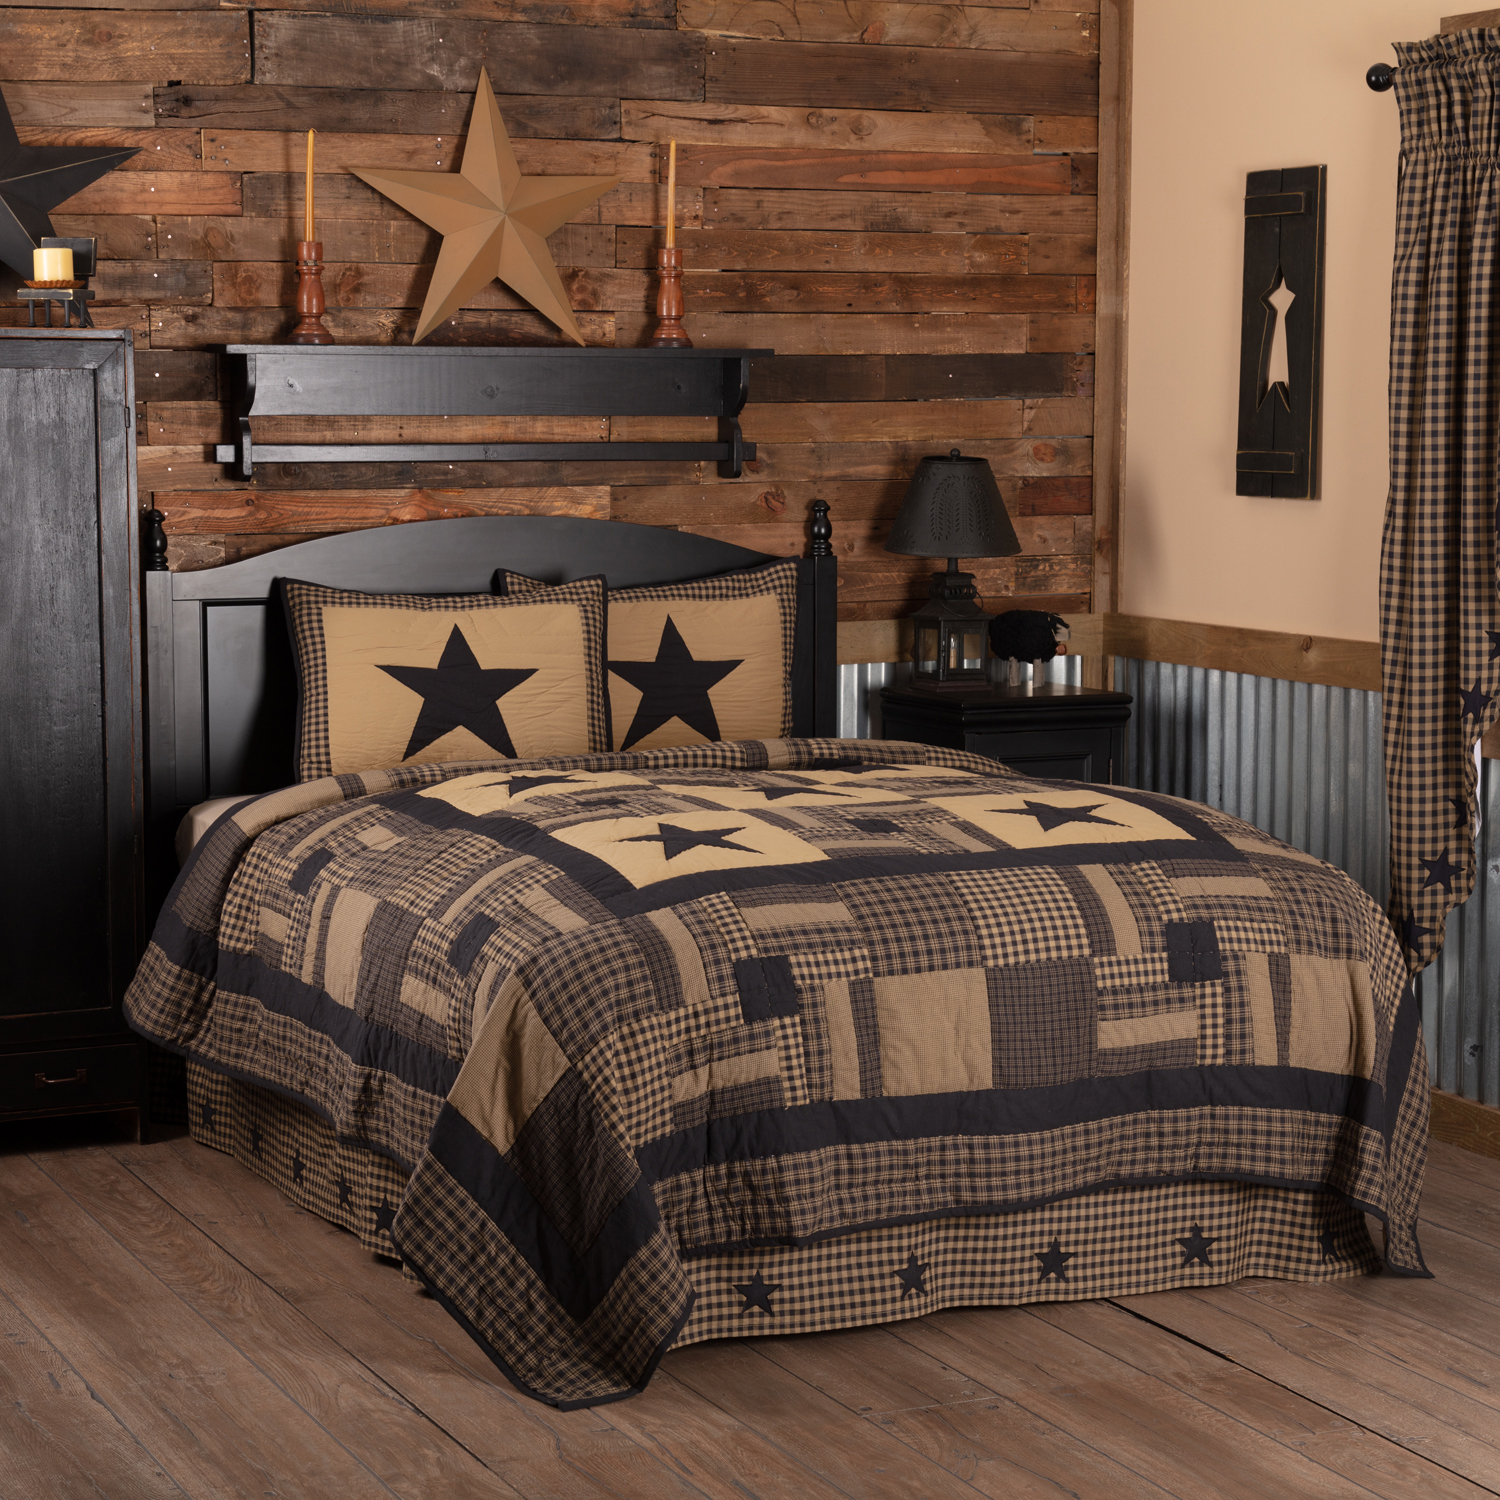 Black Check Star Queen Quilt Set; 1-Quilt 90Wx90L w/2 Shams 21x27